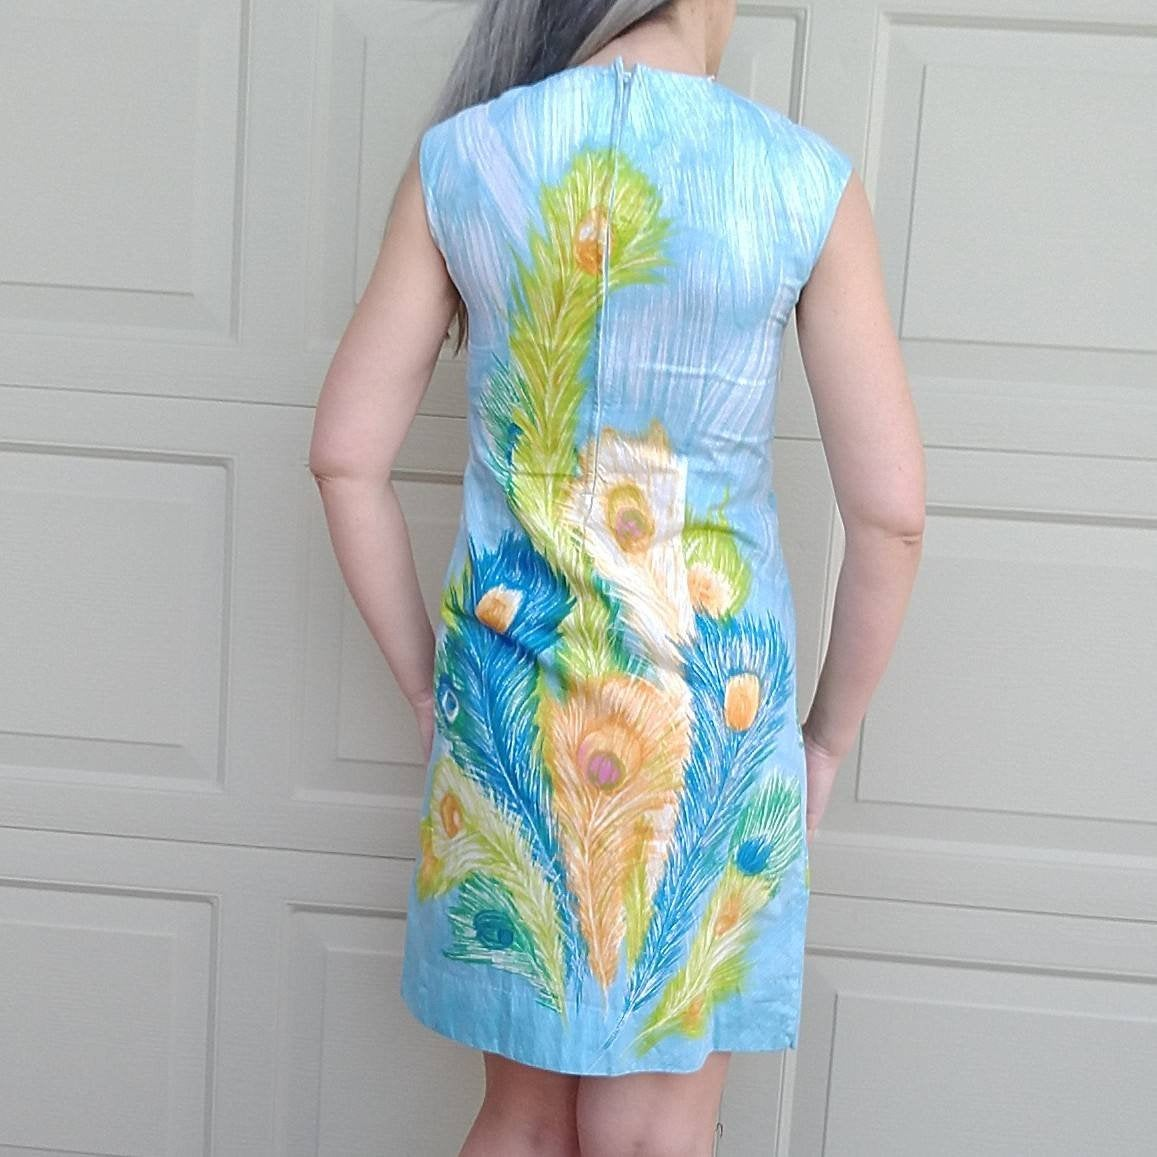 vintage PEACOCK FEATHER PRINT shift dress 1960's 60's 32 bust xs xxs (K10)